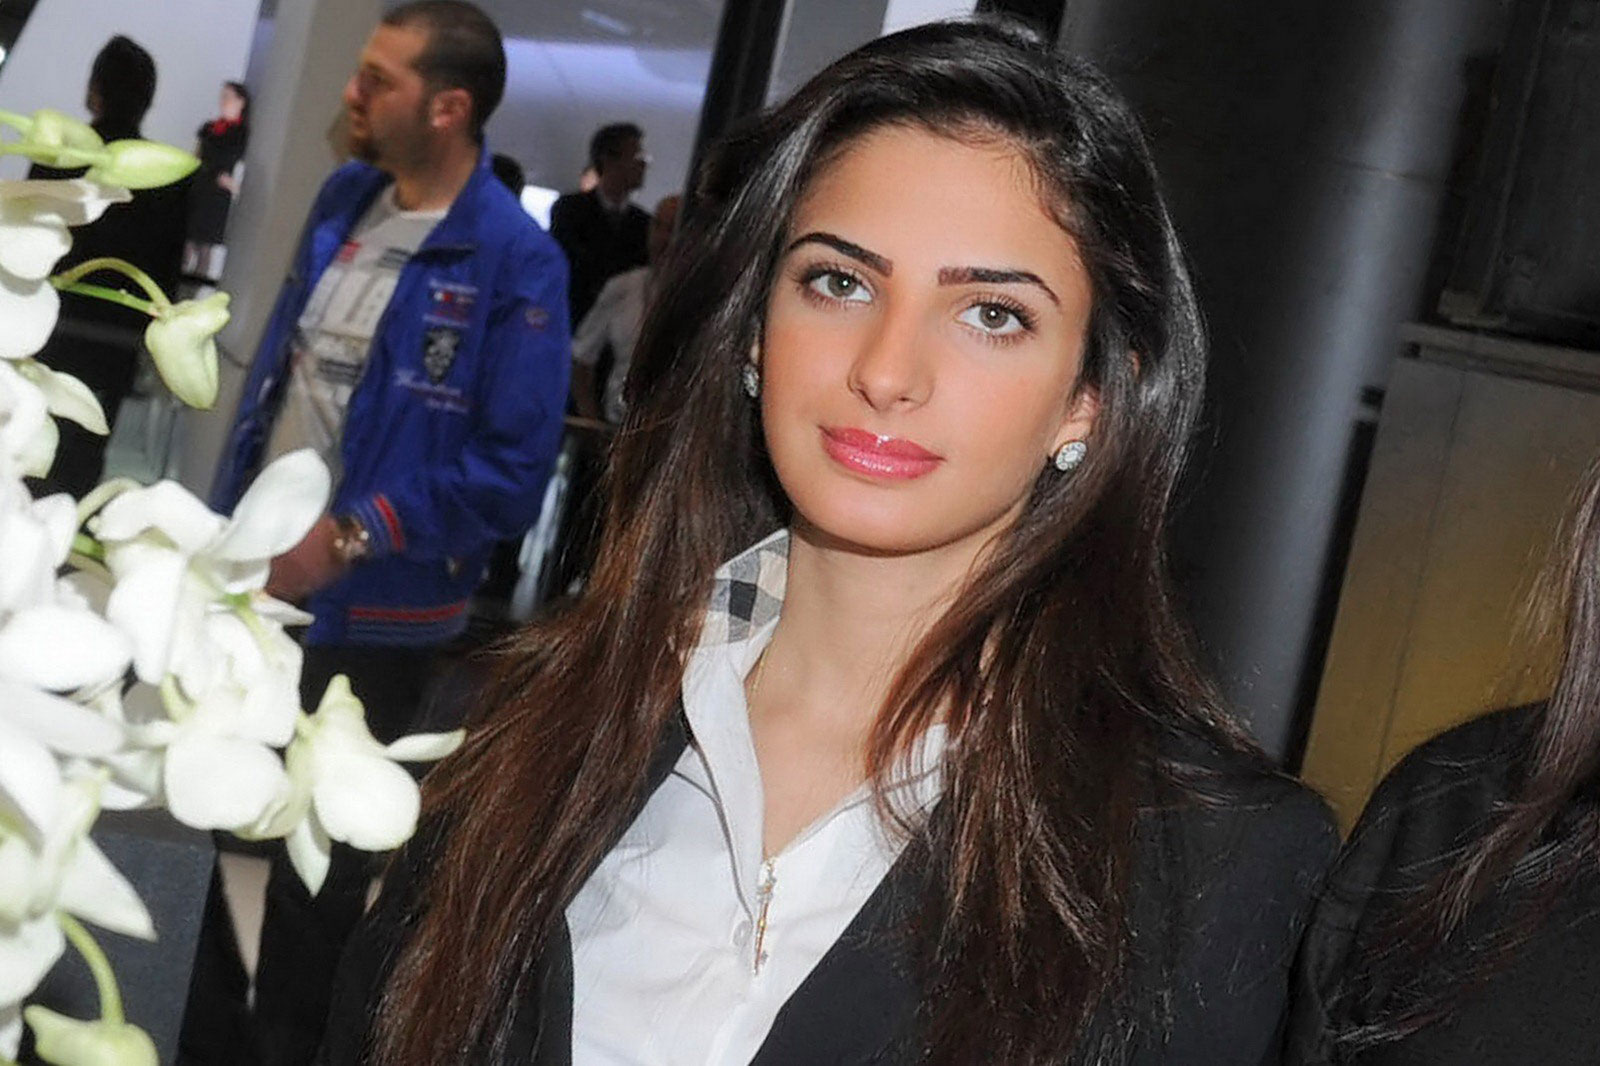 qatar dating site for friendship